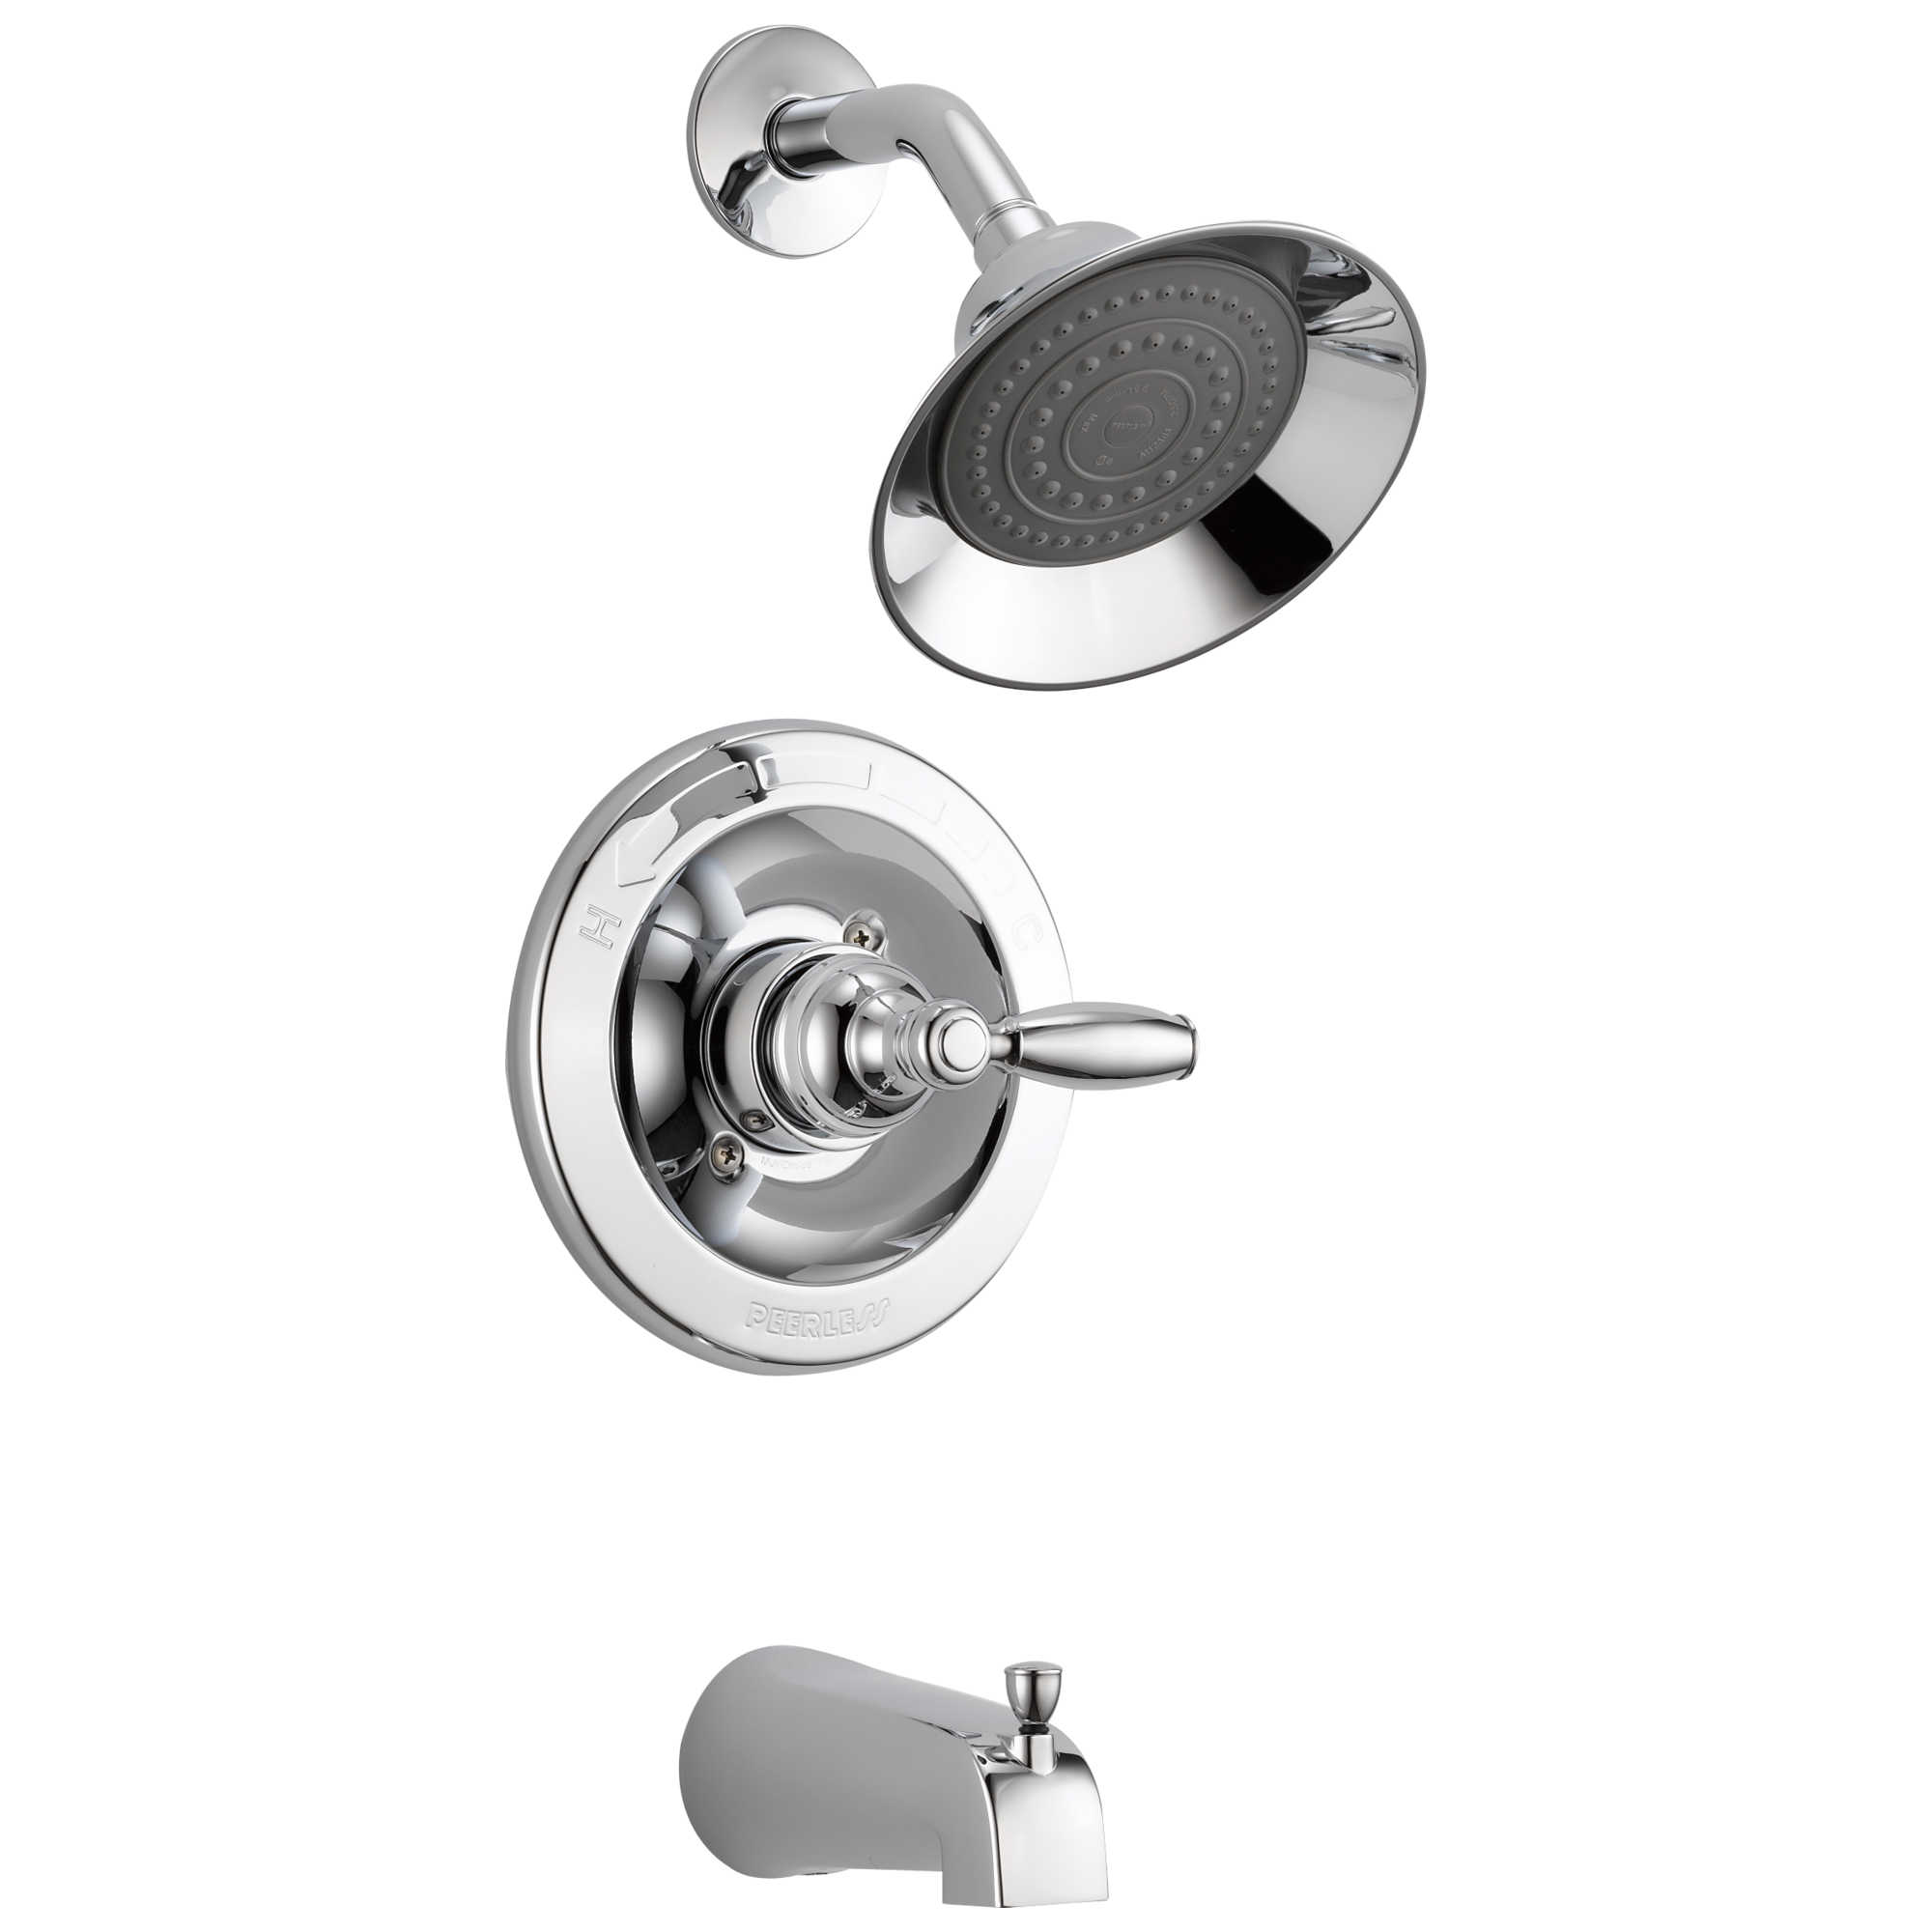 Bathroom Faucet Finishes ptt188790 - tub and shower trim